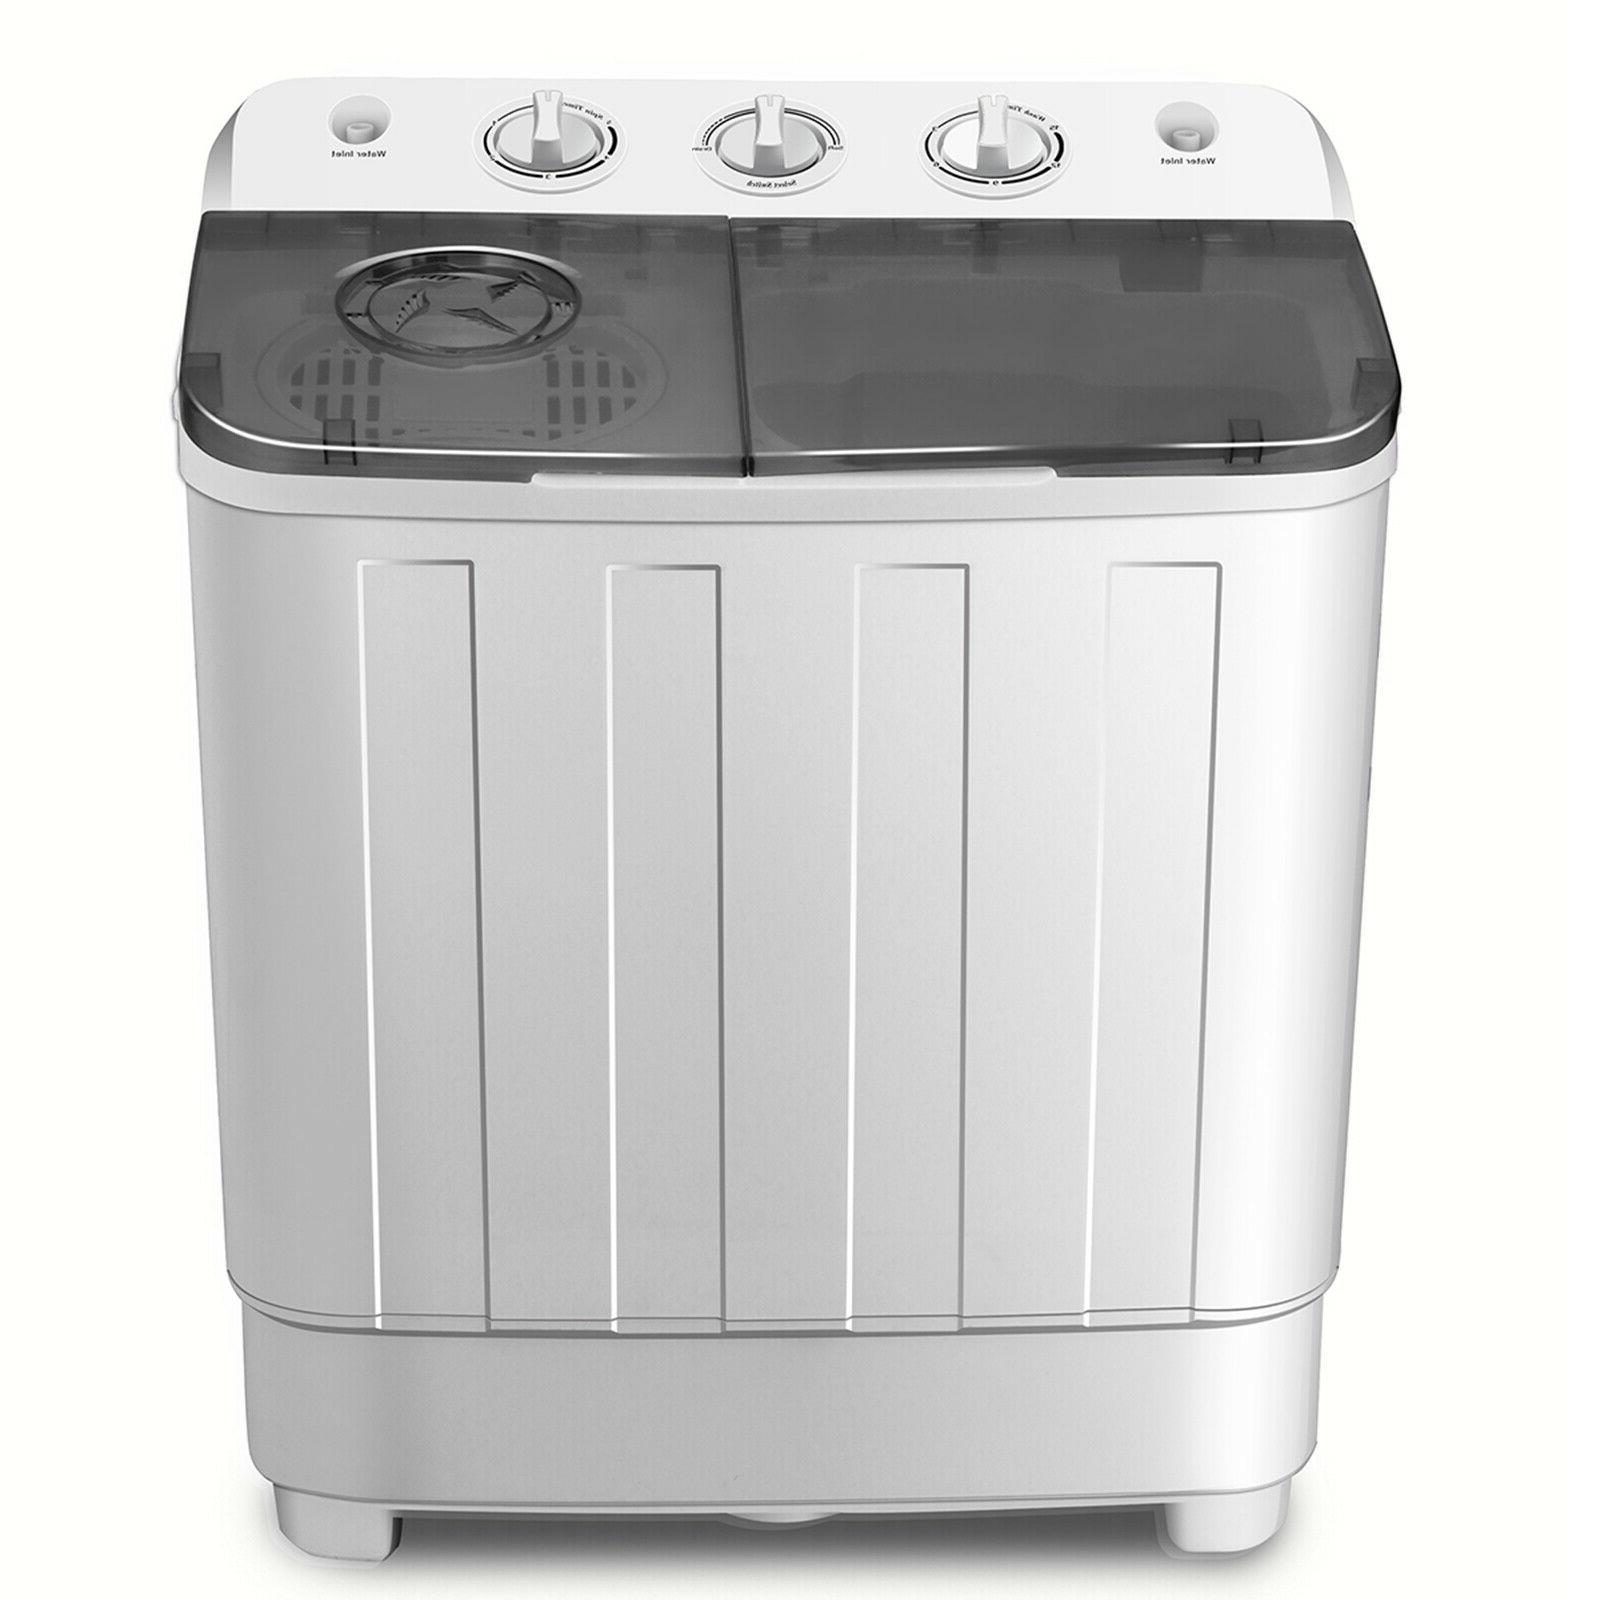 17LBS Top Machine Compact Washer Dryer Twin Tub